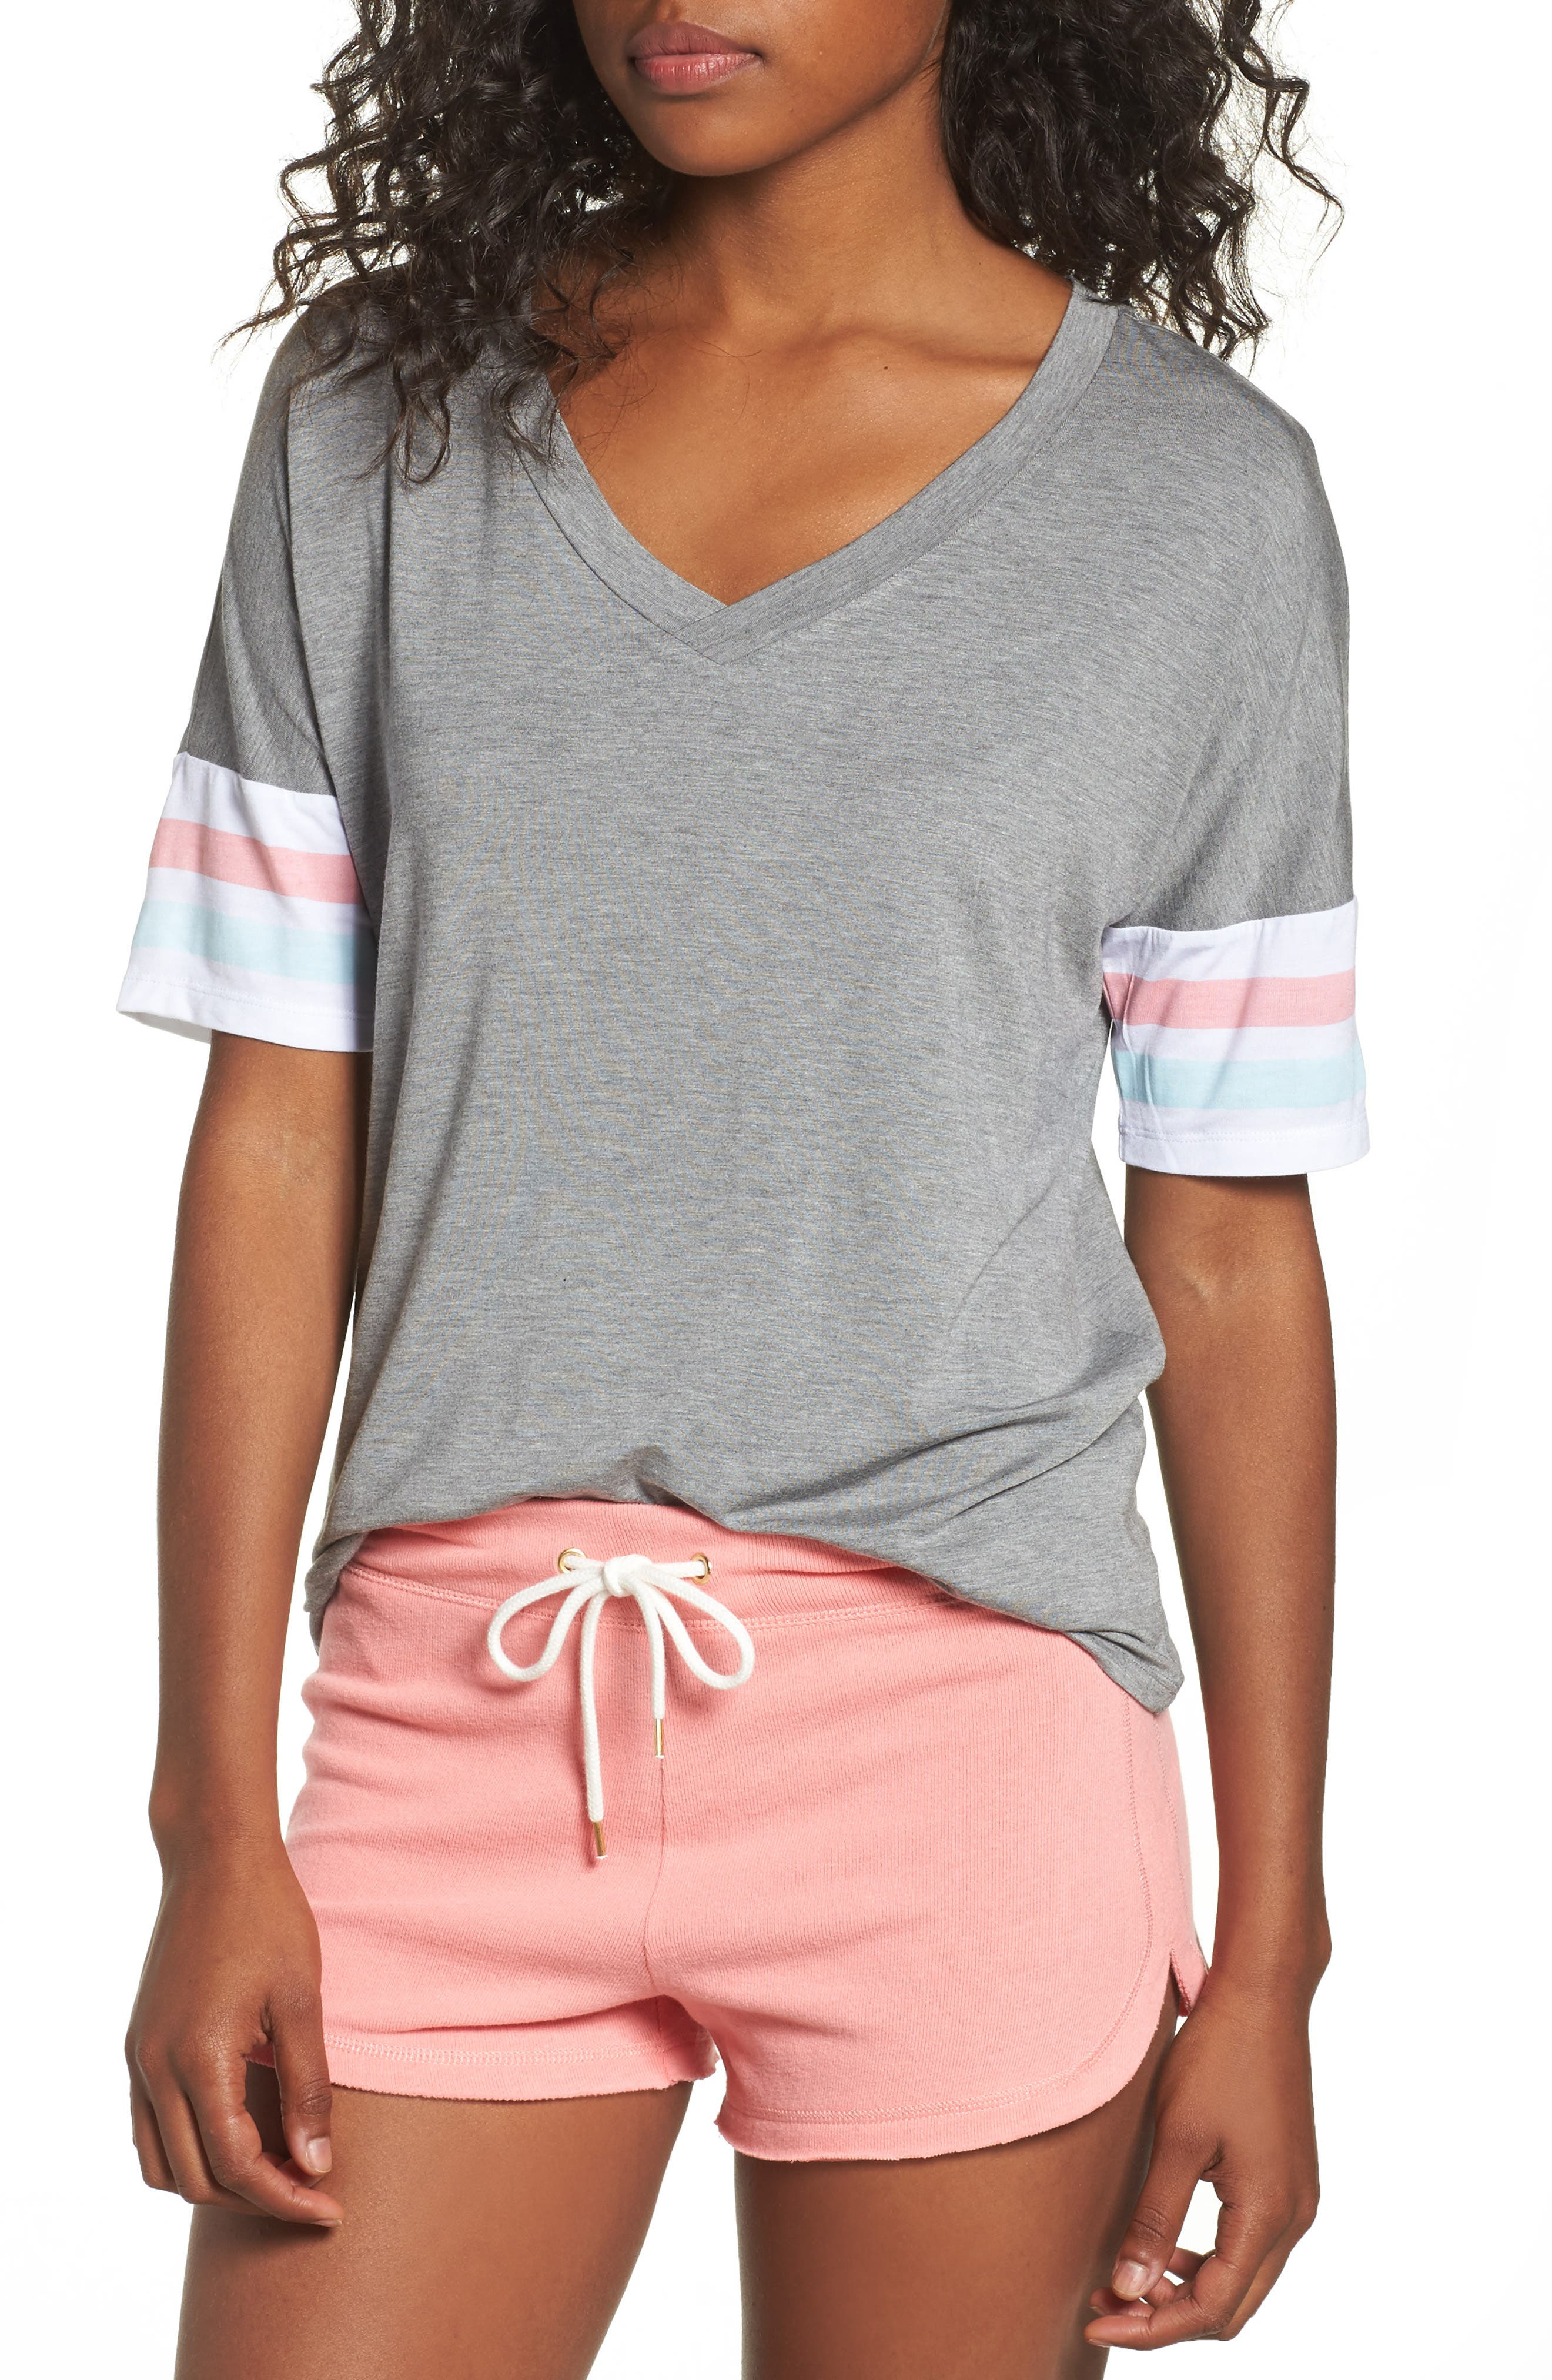 Alternate Image 1 Selected - Honeydew Intimates Relaxin' Lounge Tee